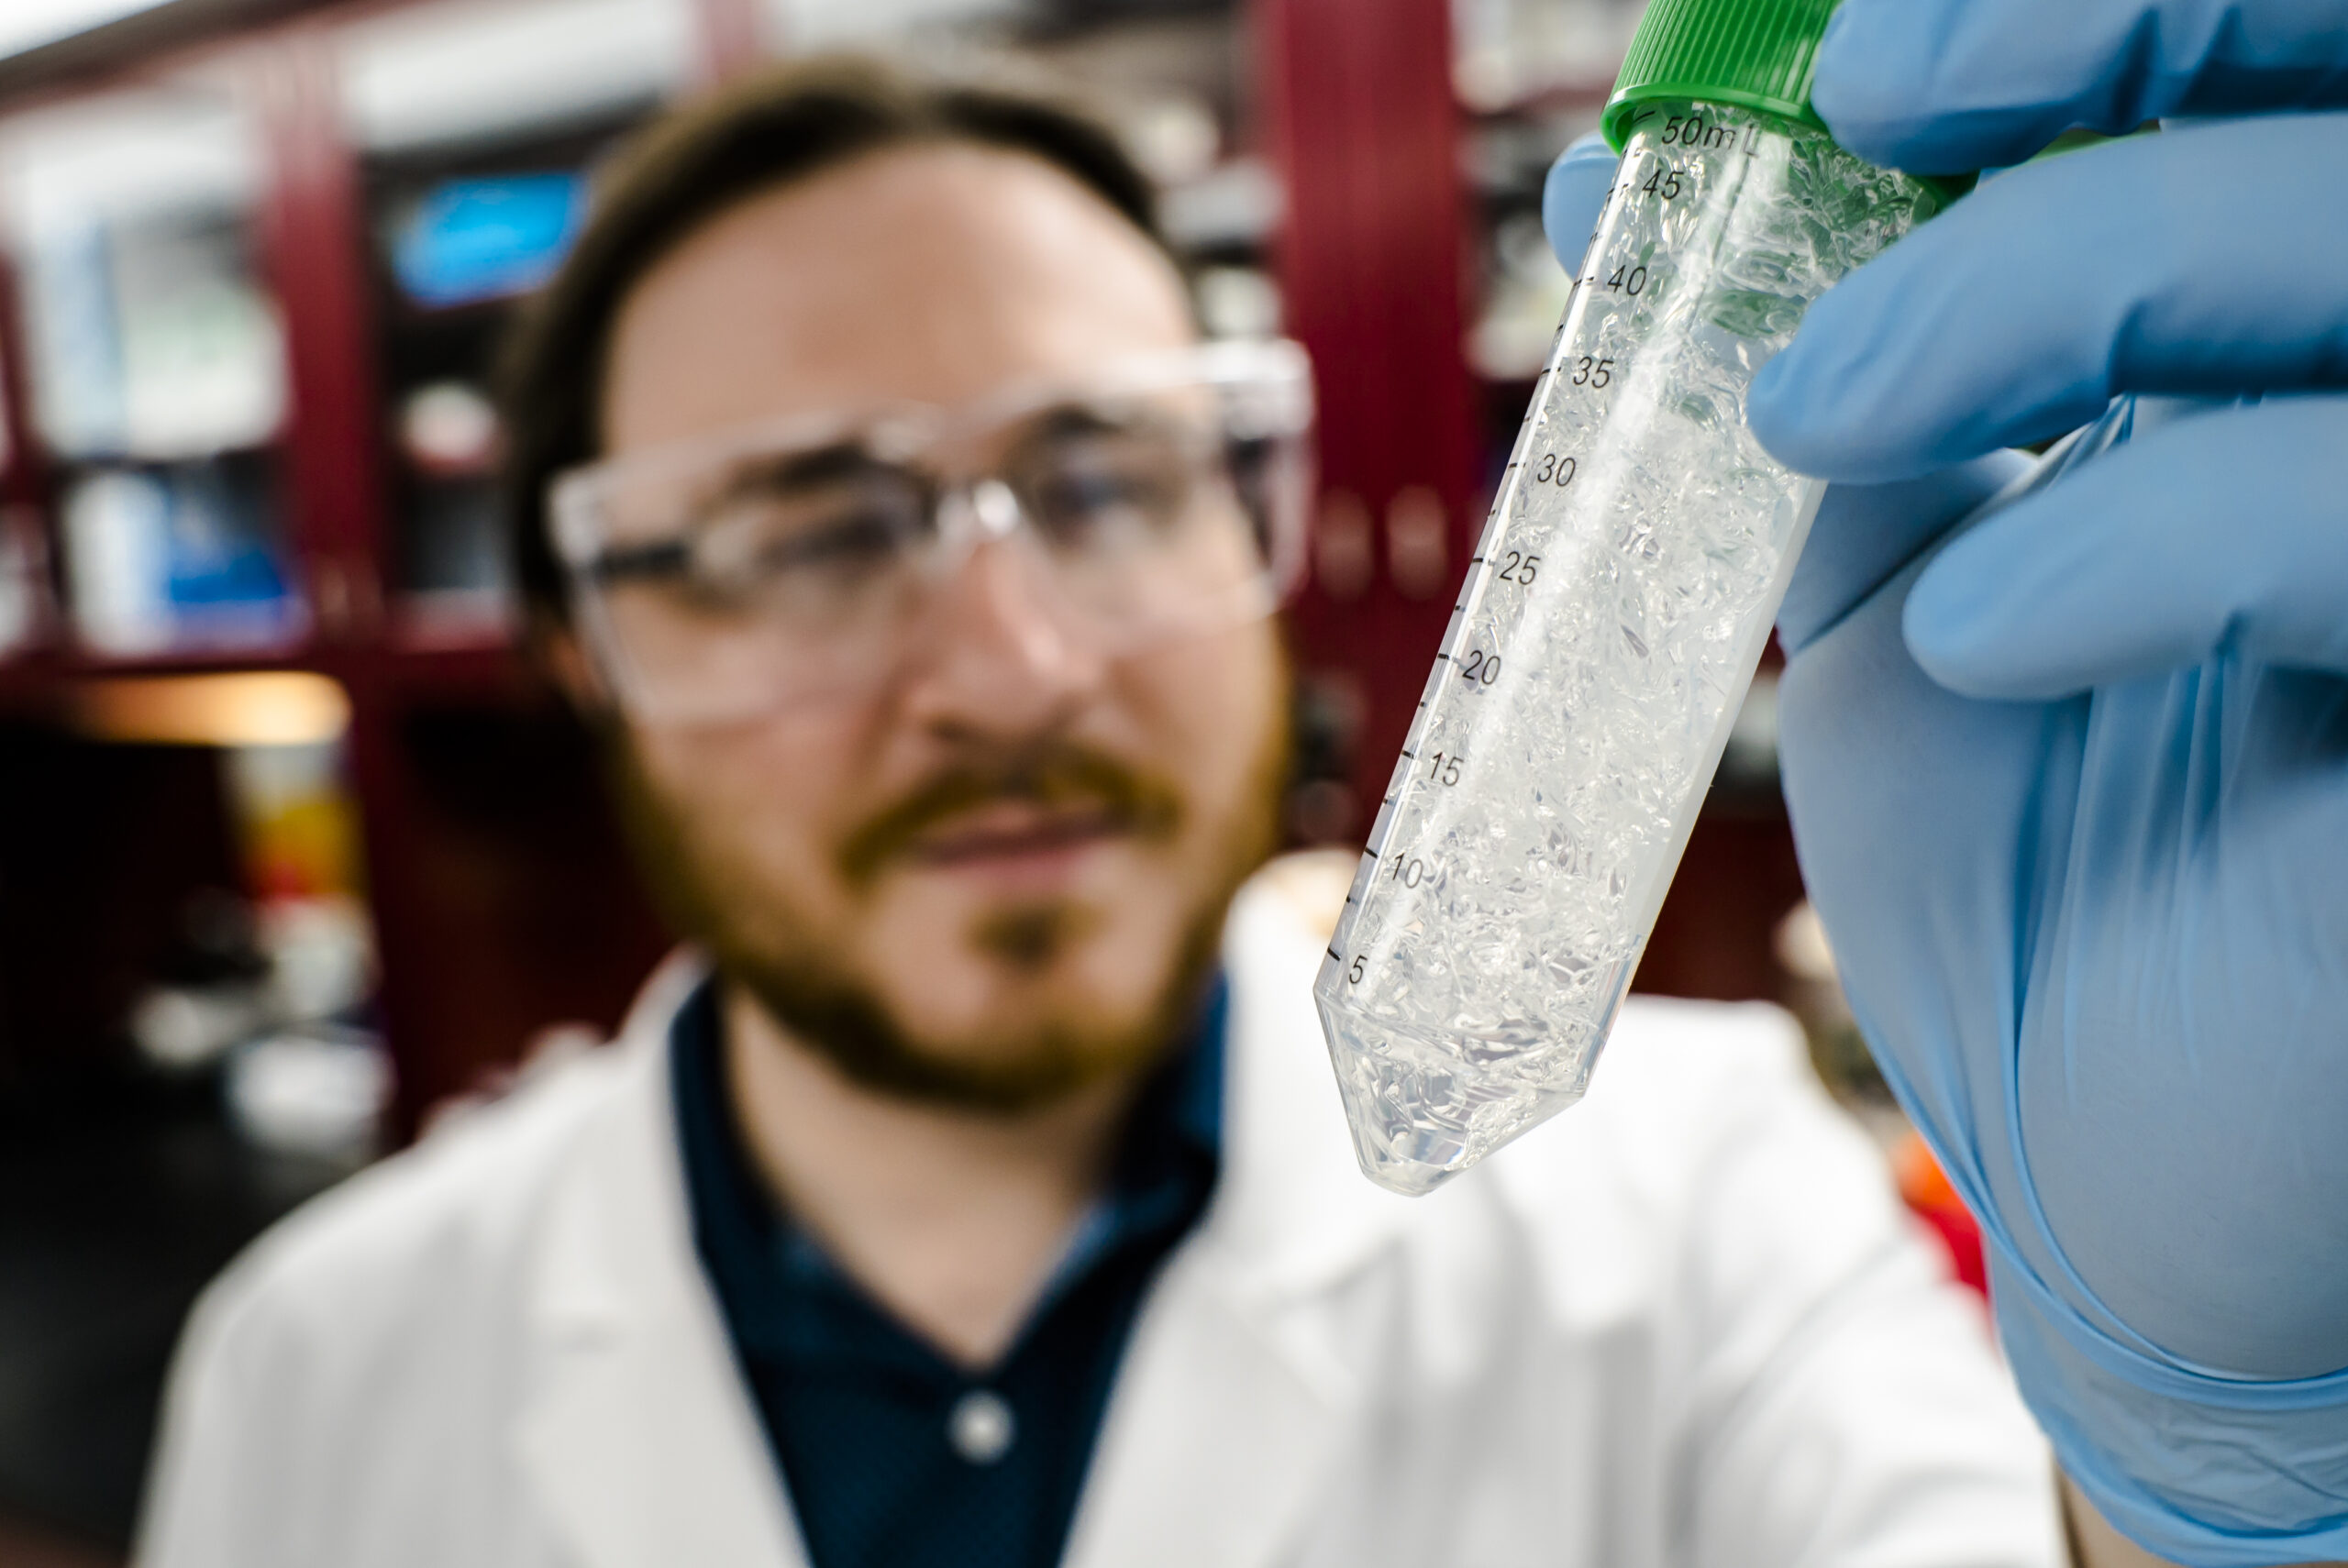 Jeremy Minty, a 2013 Ph.D. graduate of Michigan Engineering and co-founder of Ecovia Renewables, holds up a sample of the company's AzuraGel product in 2018. Minty participated in NSF's I-Corps program. Ecovia is developing a compostable biopolymer cosmetics. One of its uses could be in compostable diapers. Photo: Evan Dougherty/Michigan Engineering Communications & Marketing